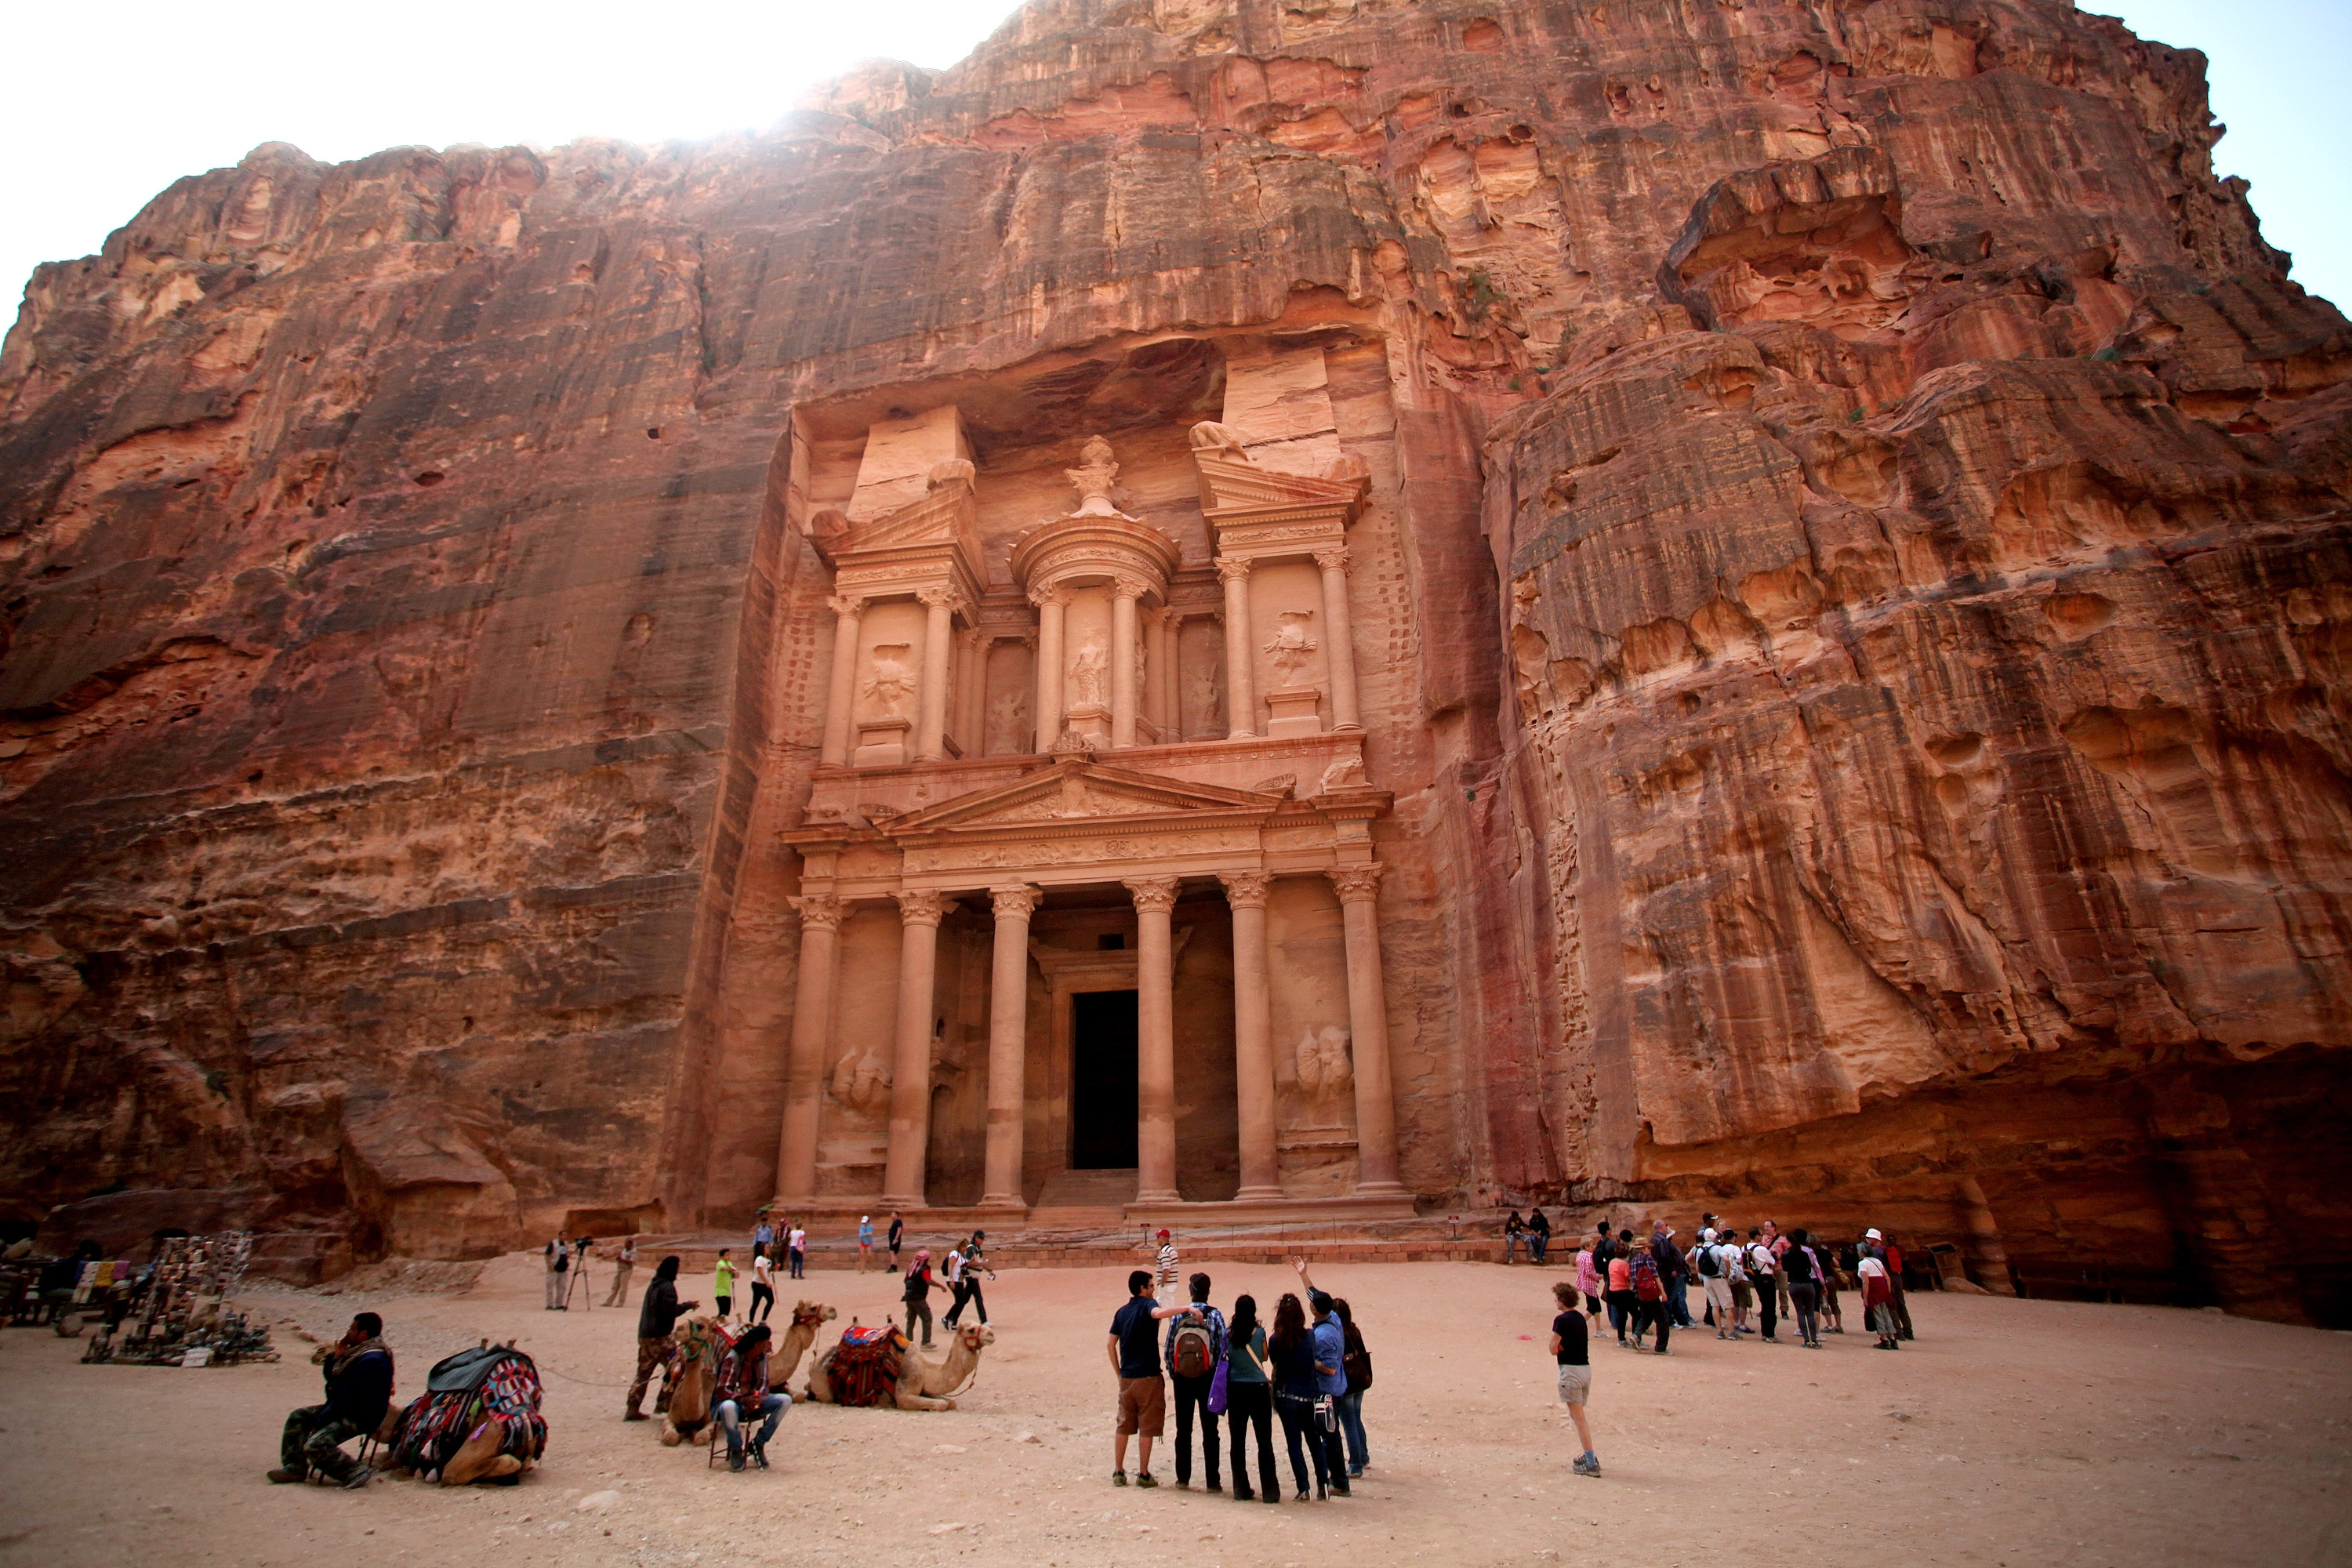 In this Thursday, March 6, 2014 photo, tourists stand in front of the rock-hewn Al Khazneh, Arabic for the Treasury, in the ancient city of Petra, Jordan. The kingdom's launched an ecotourism project with the establishment of three camps in the Petra region, the first of 22 proposed eco-camps . The camps will eventually connect three areas in Jordan including the Dana Biosphere Reserve located in south-central Jordan. (AP Photo/Mohammad Hannon)